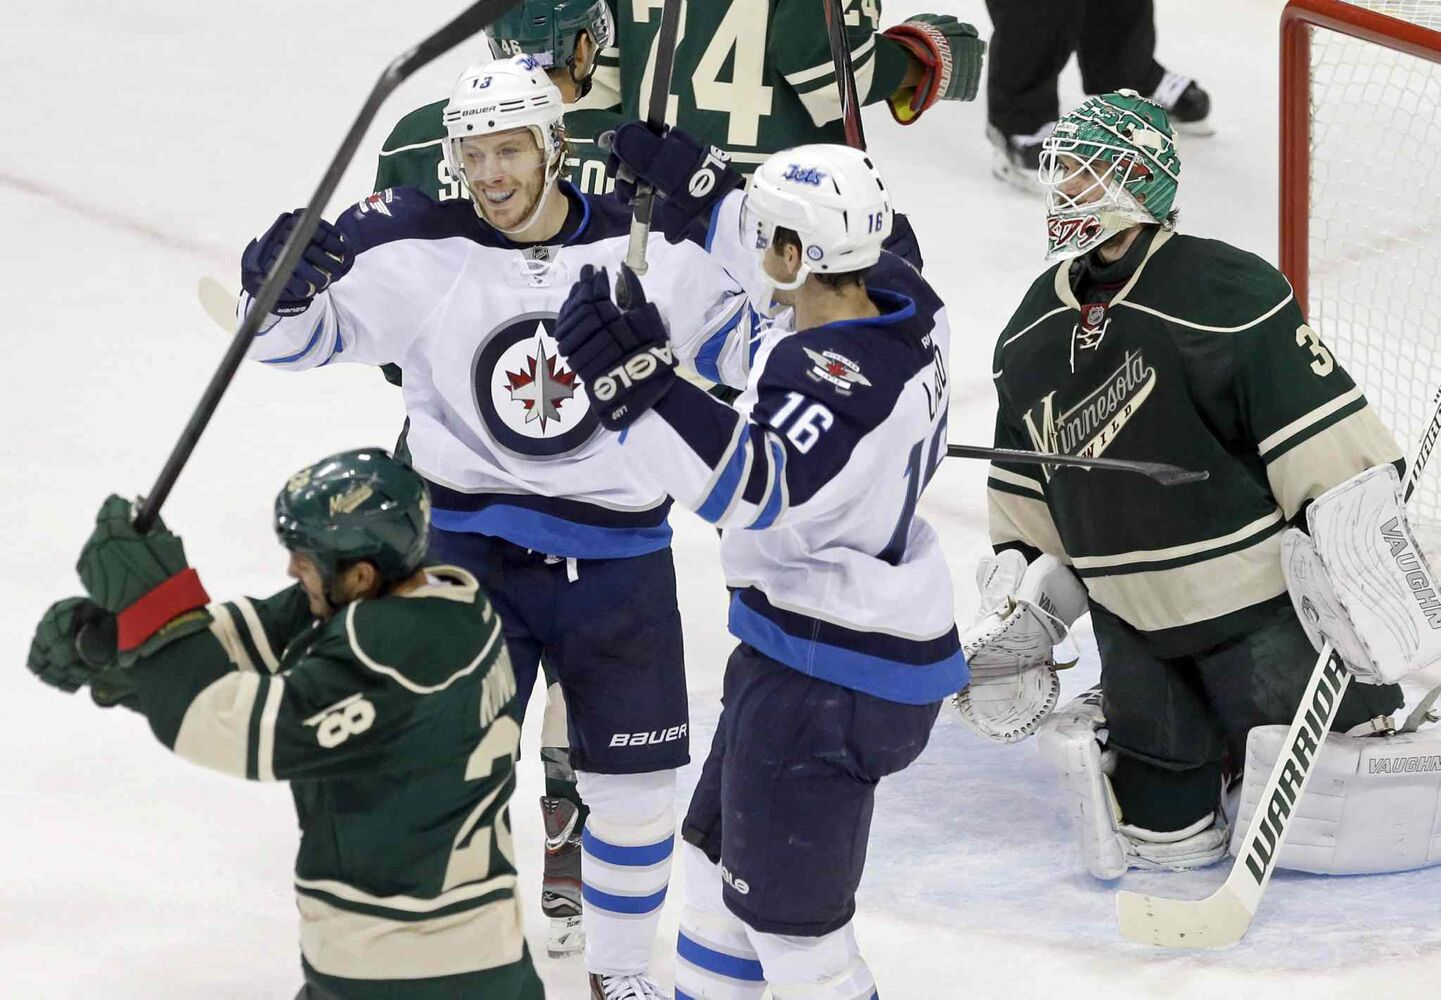 Bryan Little (18) and Andrew Ladd (16) celebrate Little's first-period power-play goal off Minnesota Wild goalie Josh Harding (right), as Zenon Konopka (lower left) swings his stick toward the ice in frustration.